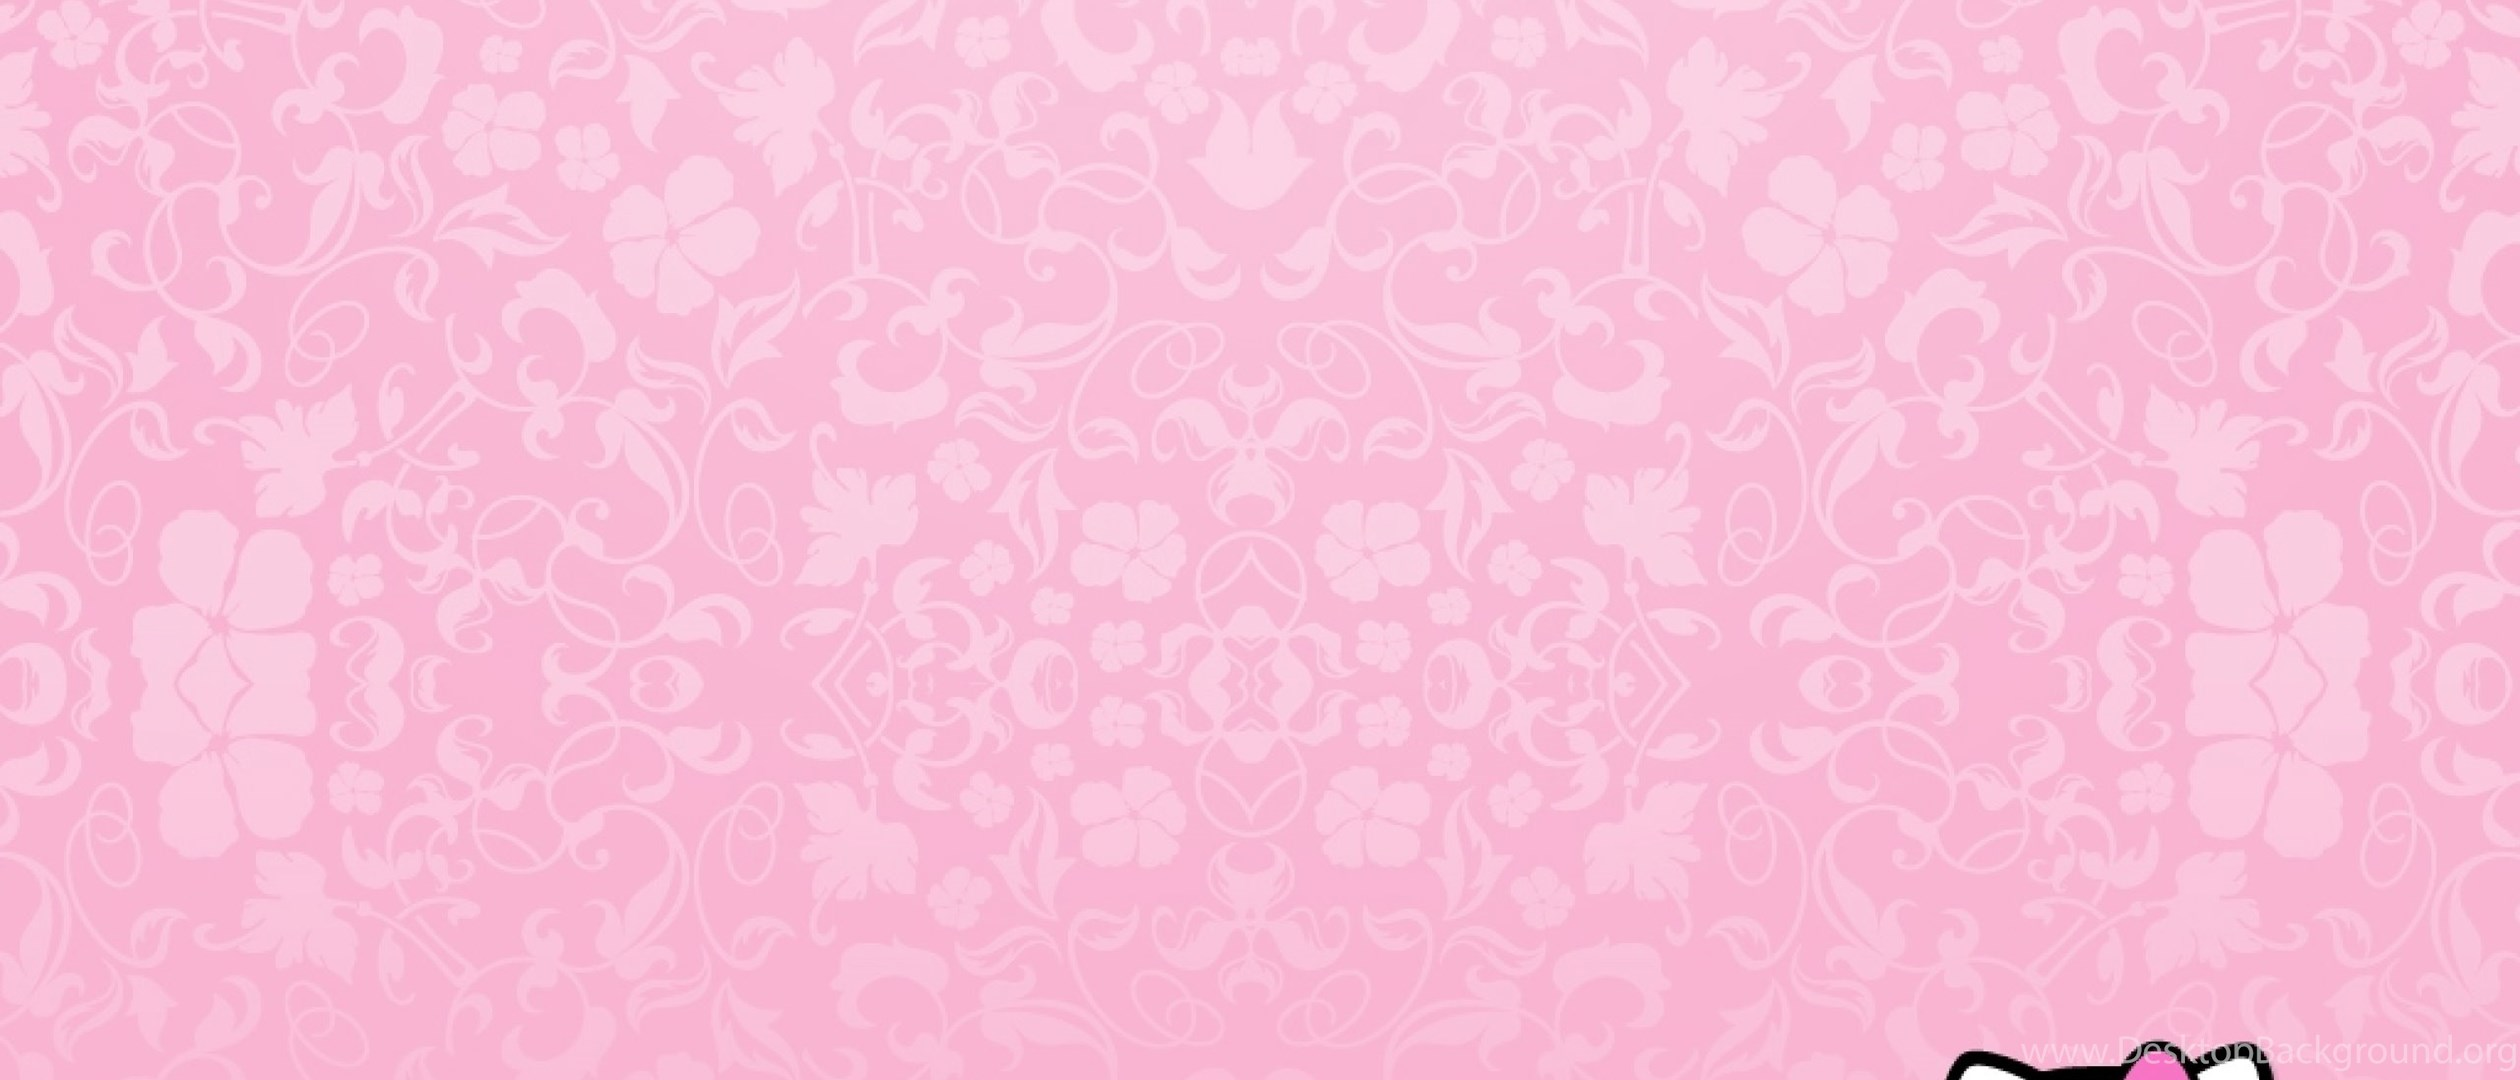 Download Wallpaper Hello Kitty Peach - 1009705_pink-hello-kitty-backgrounds-wallpapers-zone_2560x1600_h  Trends_4350.jpg